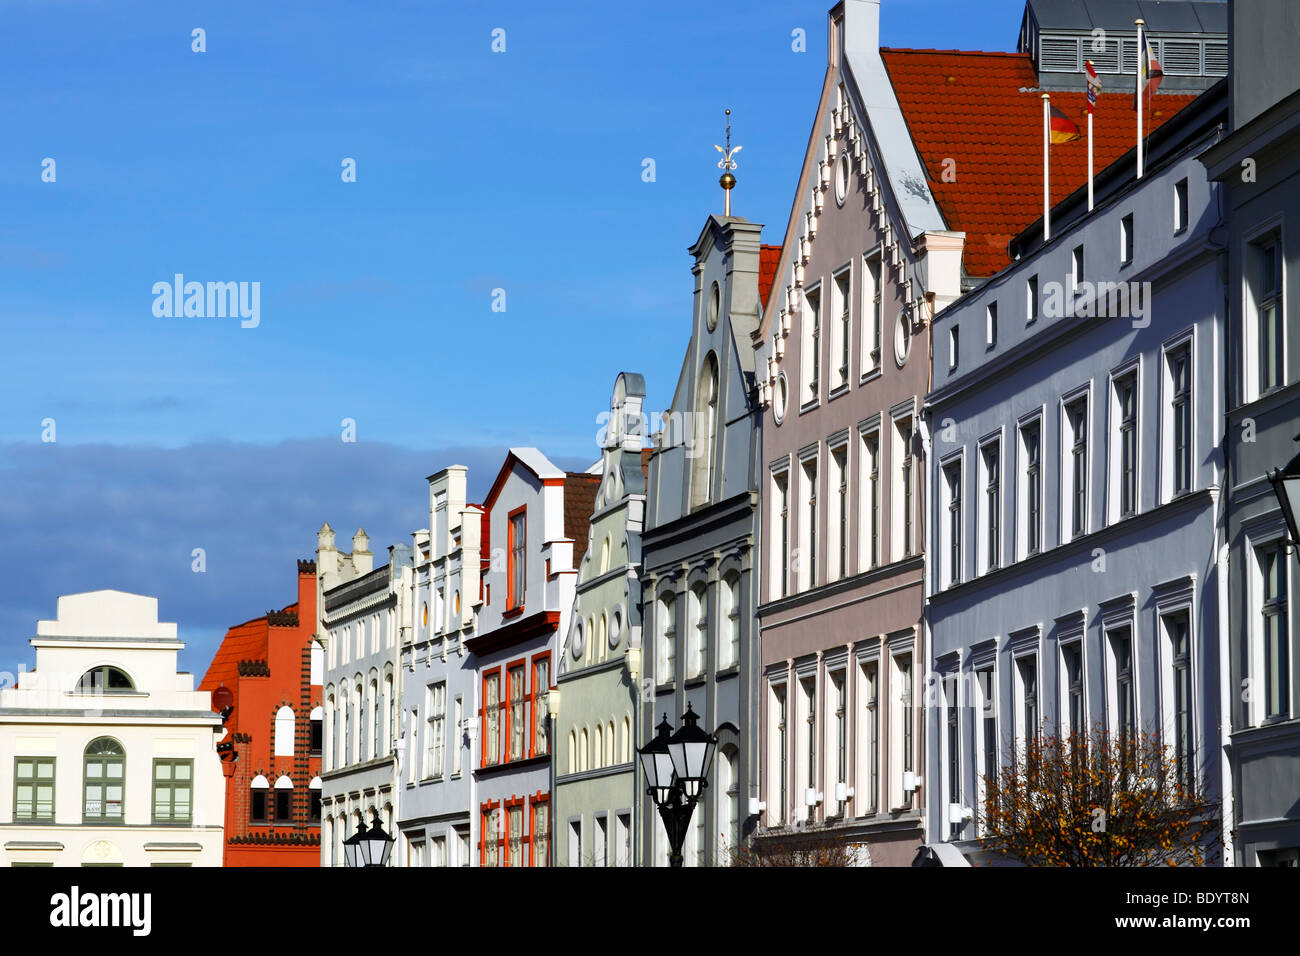 Town houses at market square / Wismar - Stock Image